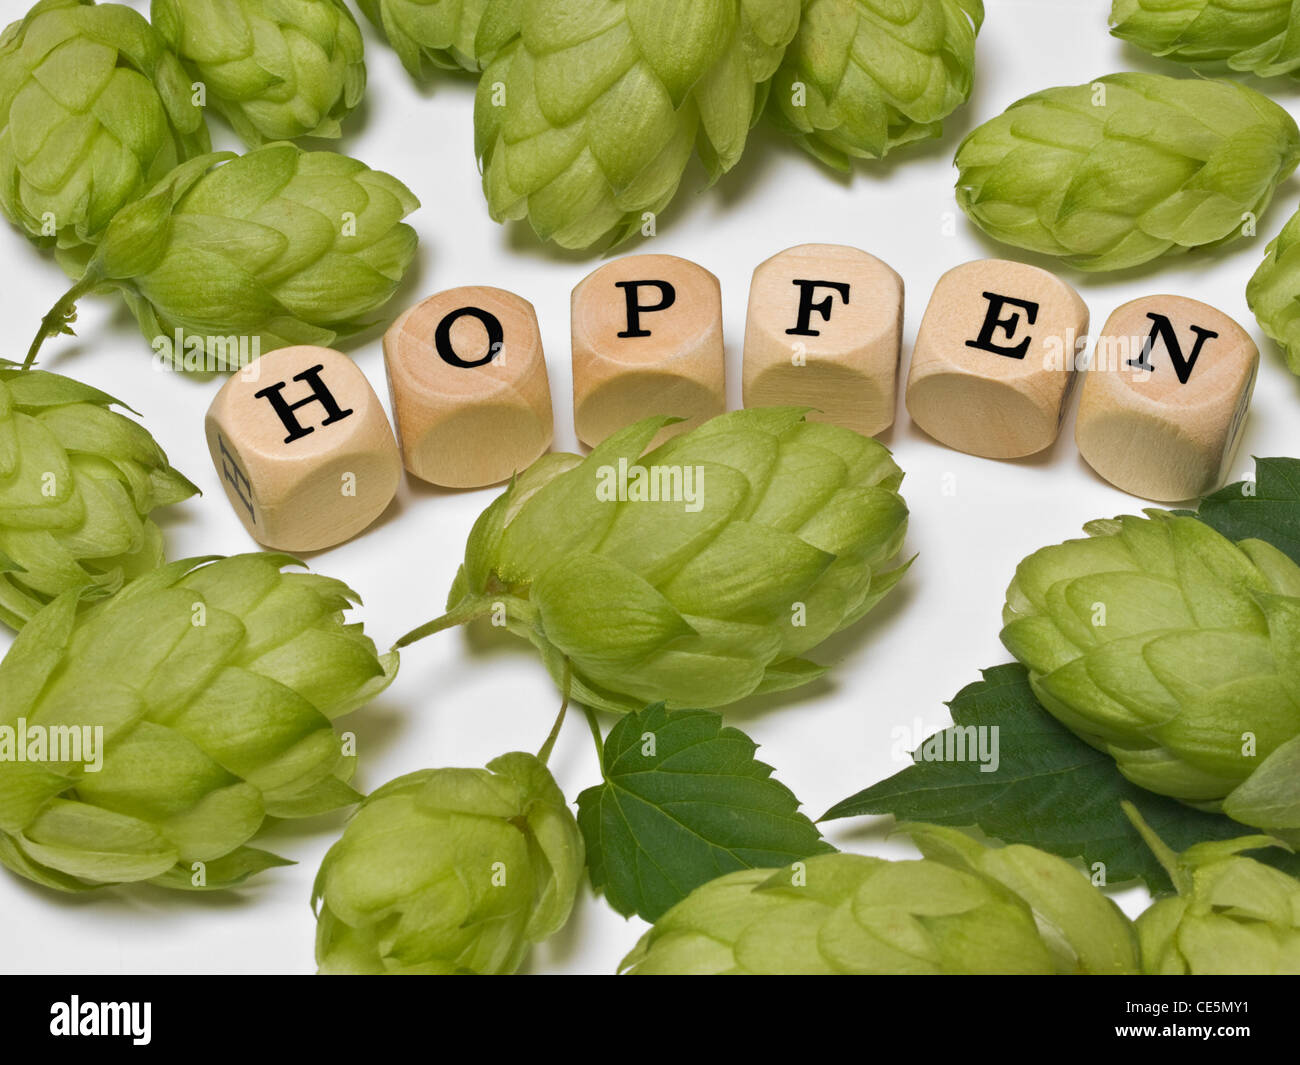 Detail photo of Lemon balm leaves alongside are cubes which form the word 'hop' in German - Stock Image